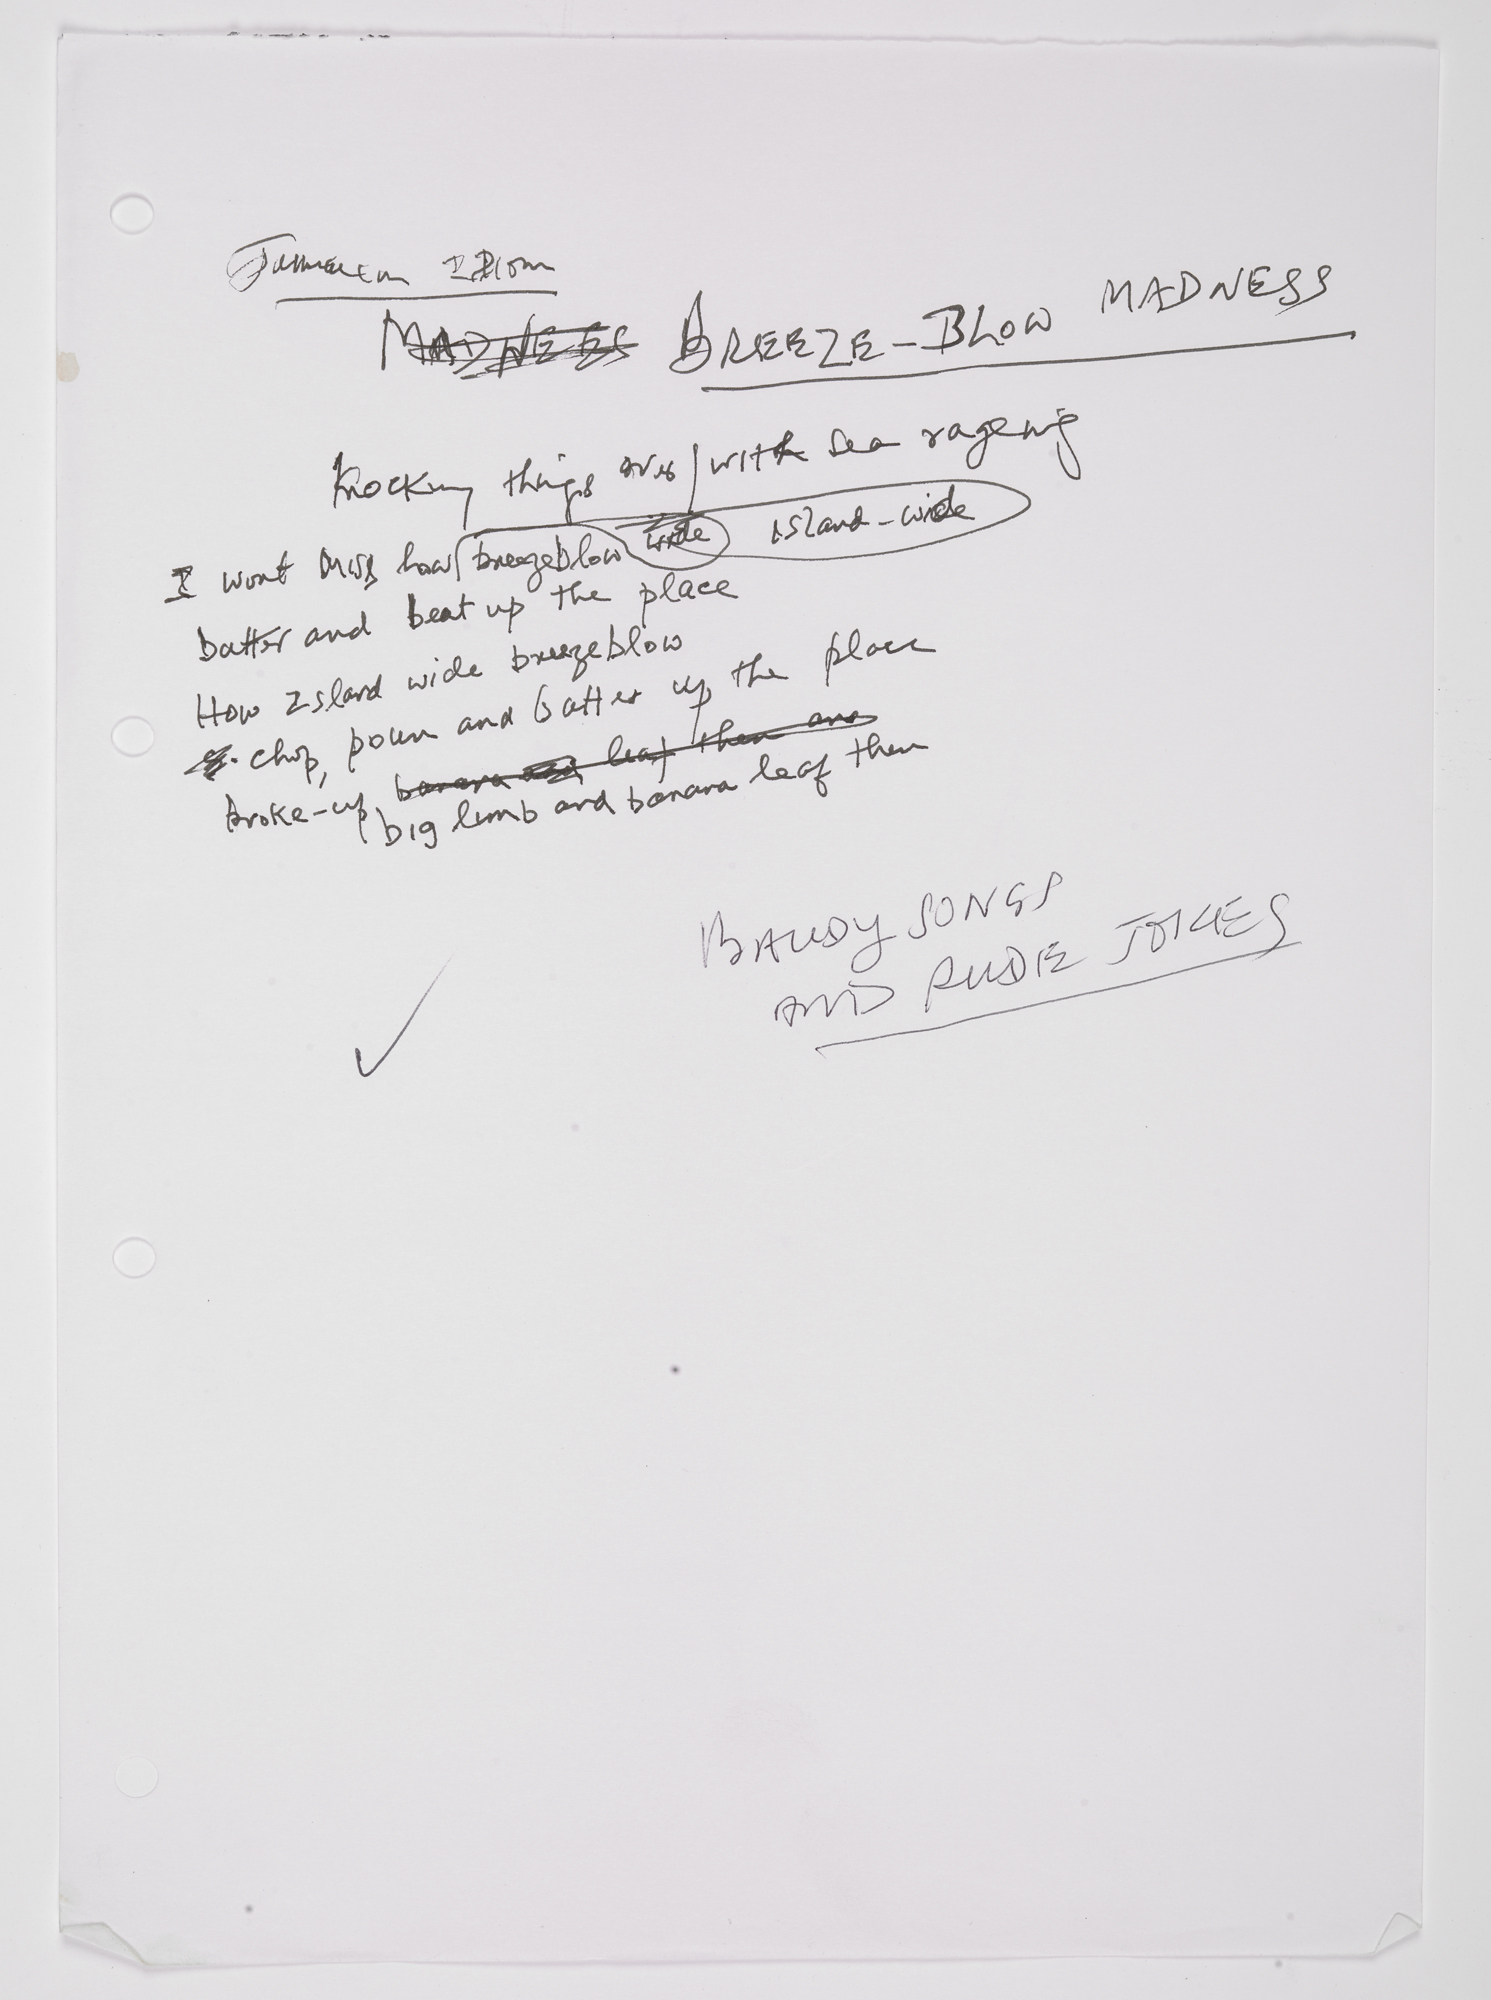 Handwritten draft poem titled Breeze-blow Madness by James Berry for his collection Windrush Songs